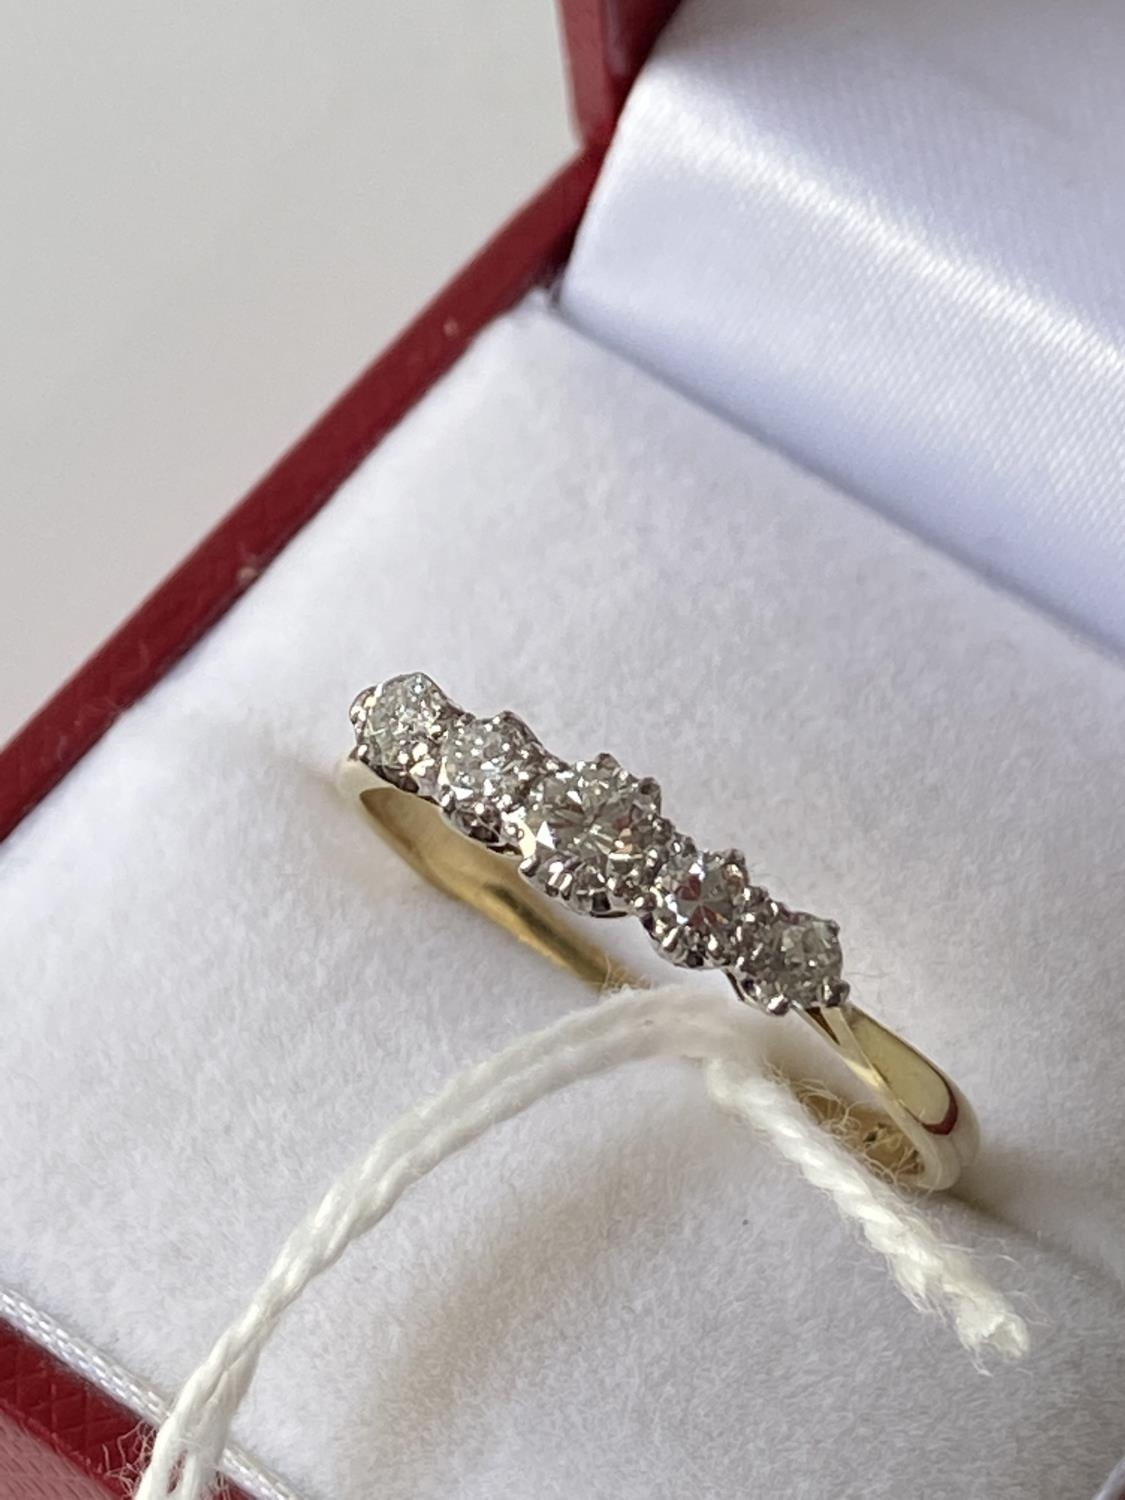 An 18ct gold ladies ring set with 5 brilliant white diamonds [1 inclusion] [size T] [2.73g] - Image 5 of 10